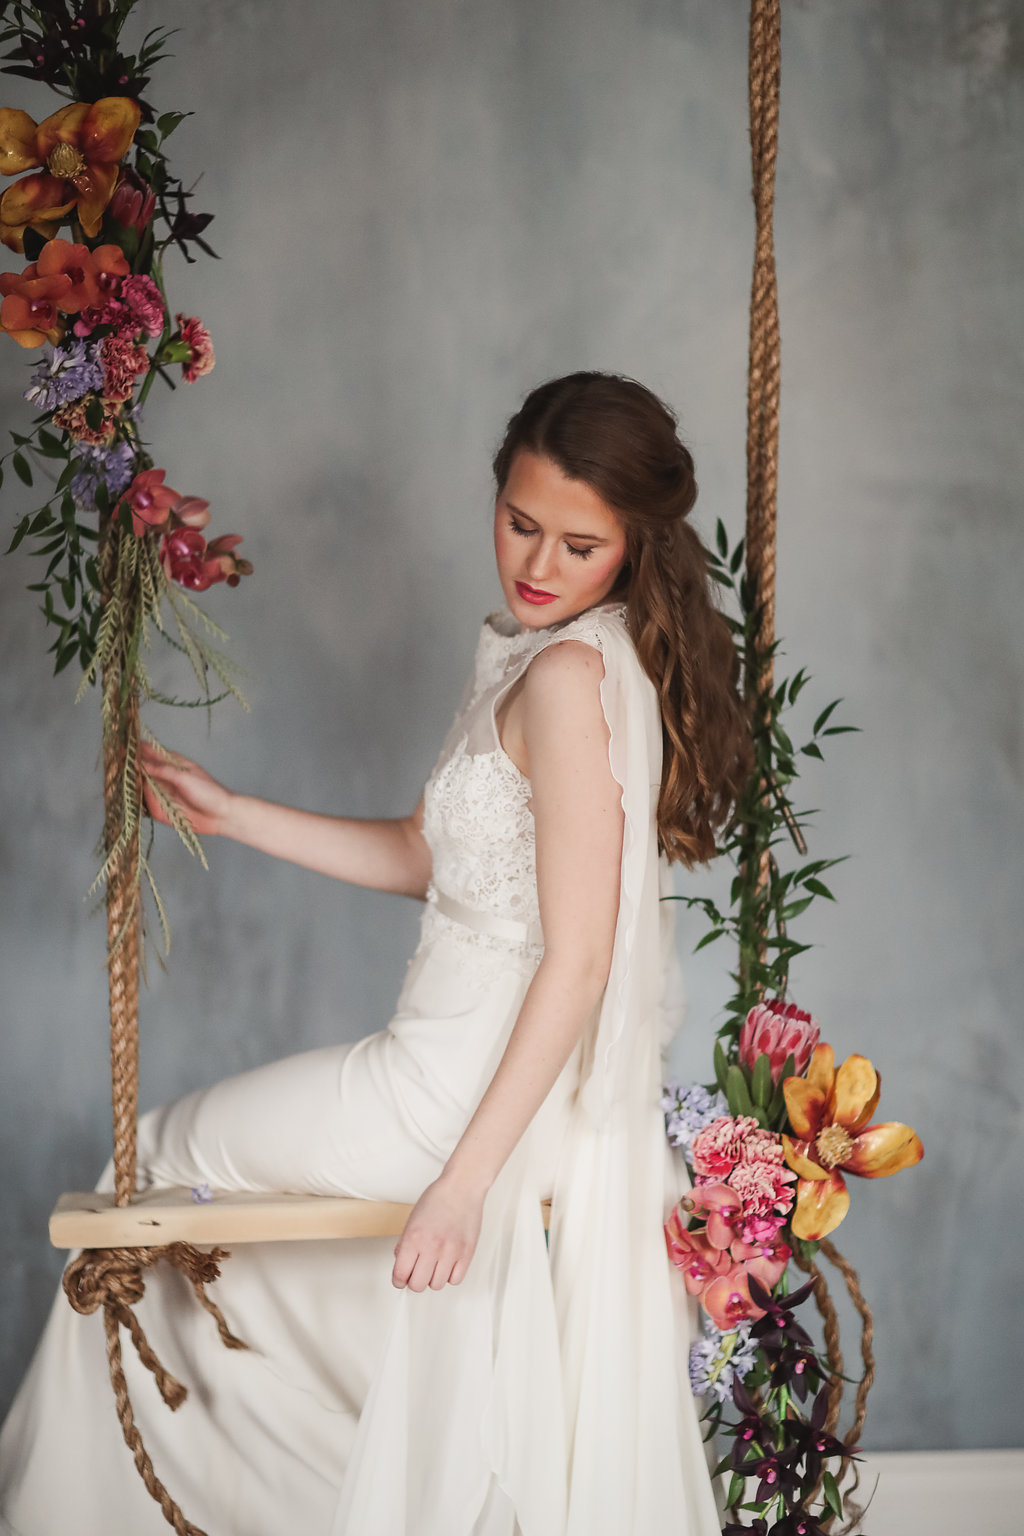 The lovely Amber modeling a dress by Eugenia Couture on our in house swing (did I mention we installed a swing?!?!) with gorgeous florals by Allium Design, hair and make up provided by Nicole Lynne